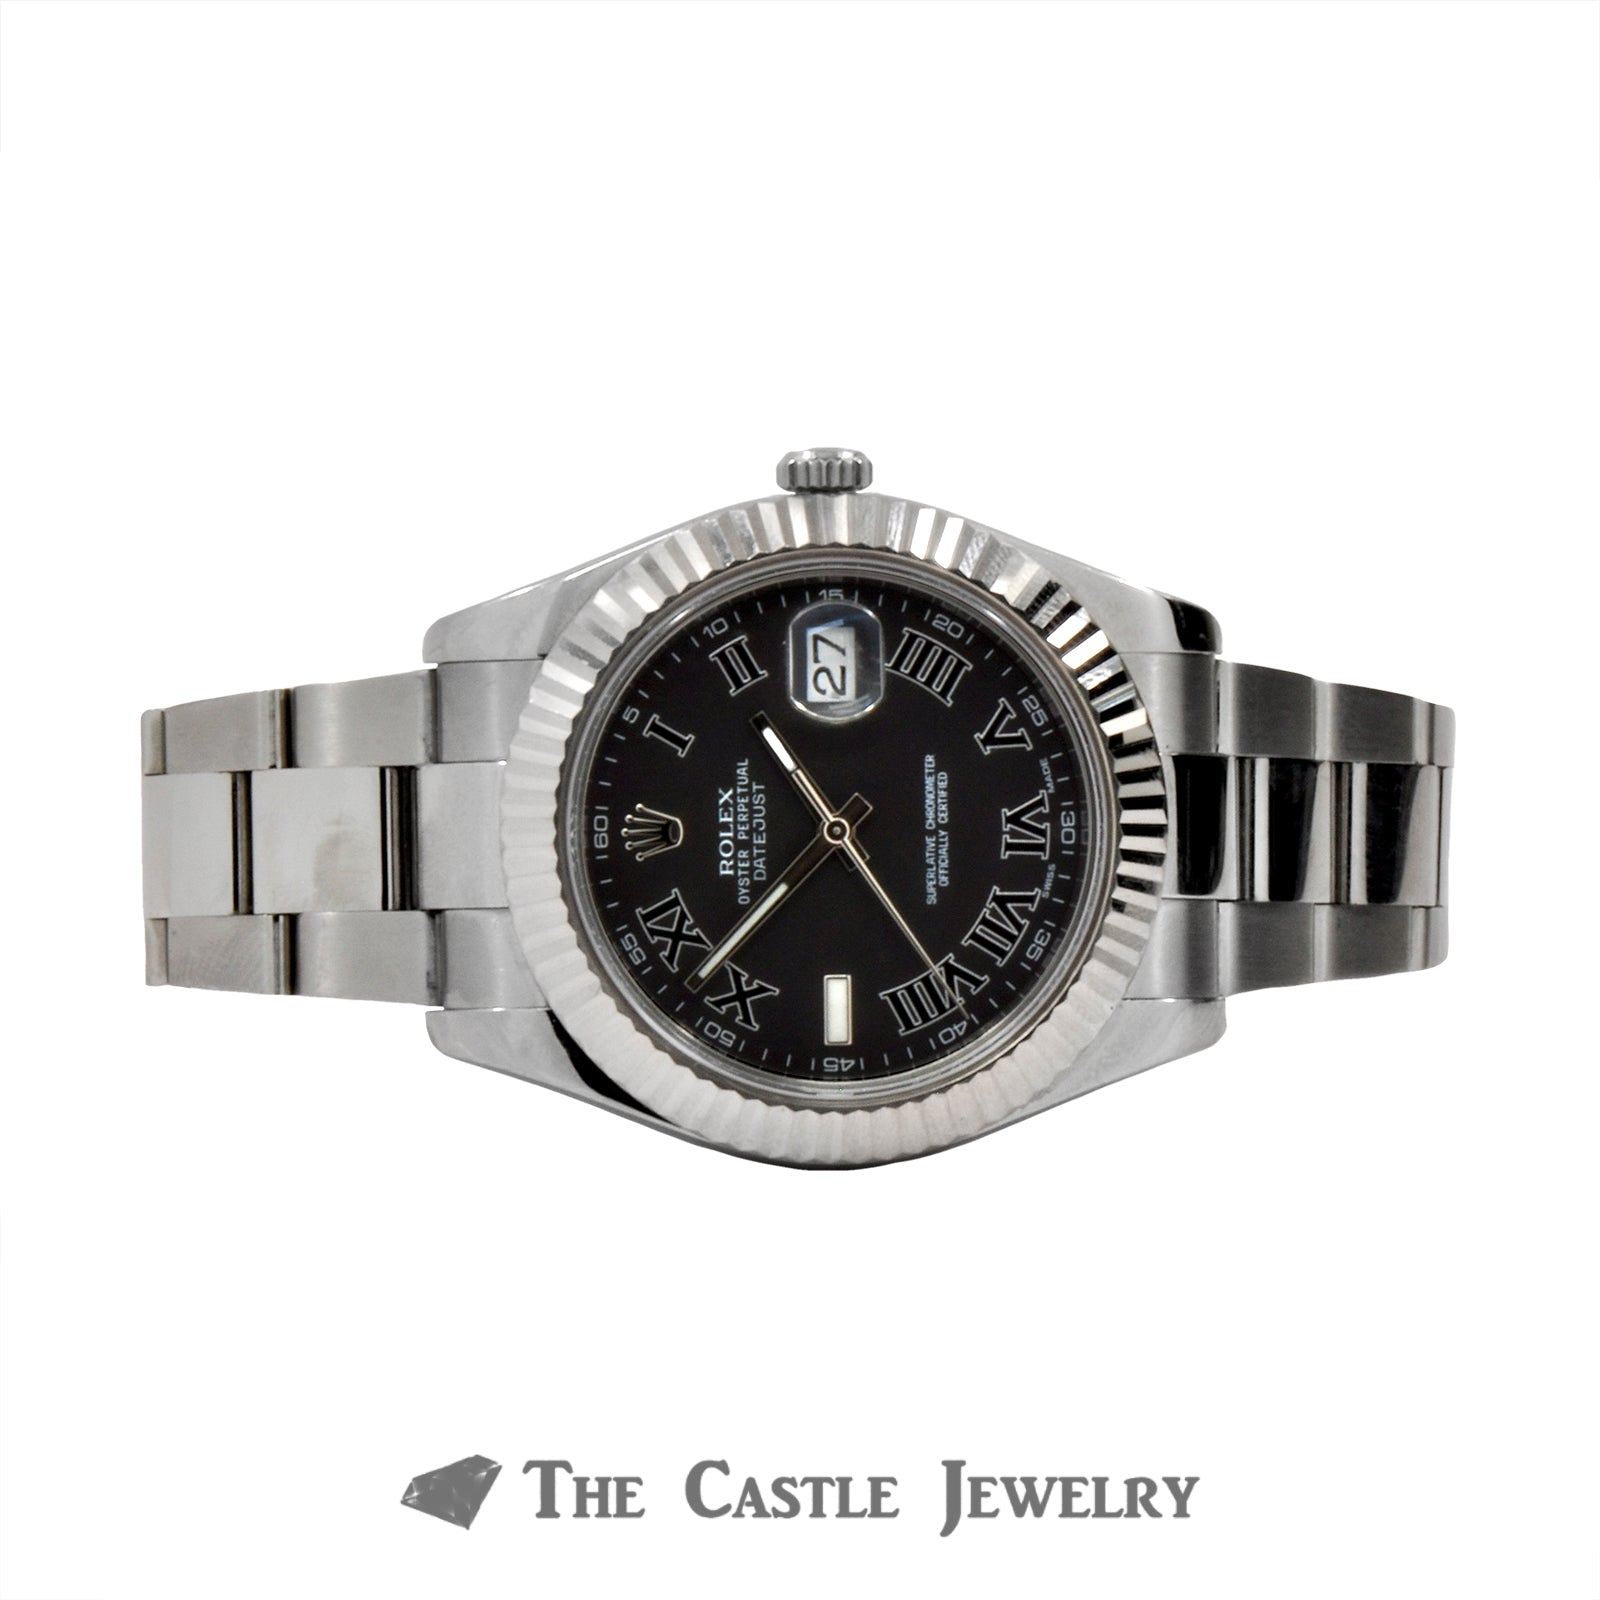 Rolex Datejust II 41mm with Roman Numeral Dial-5